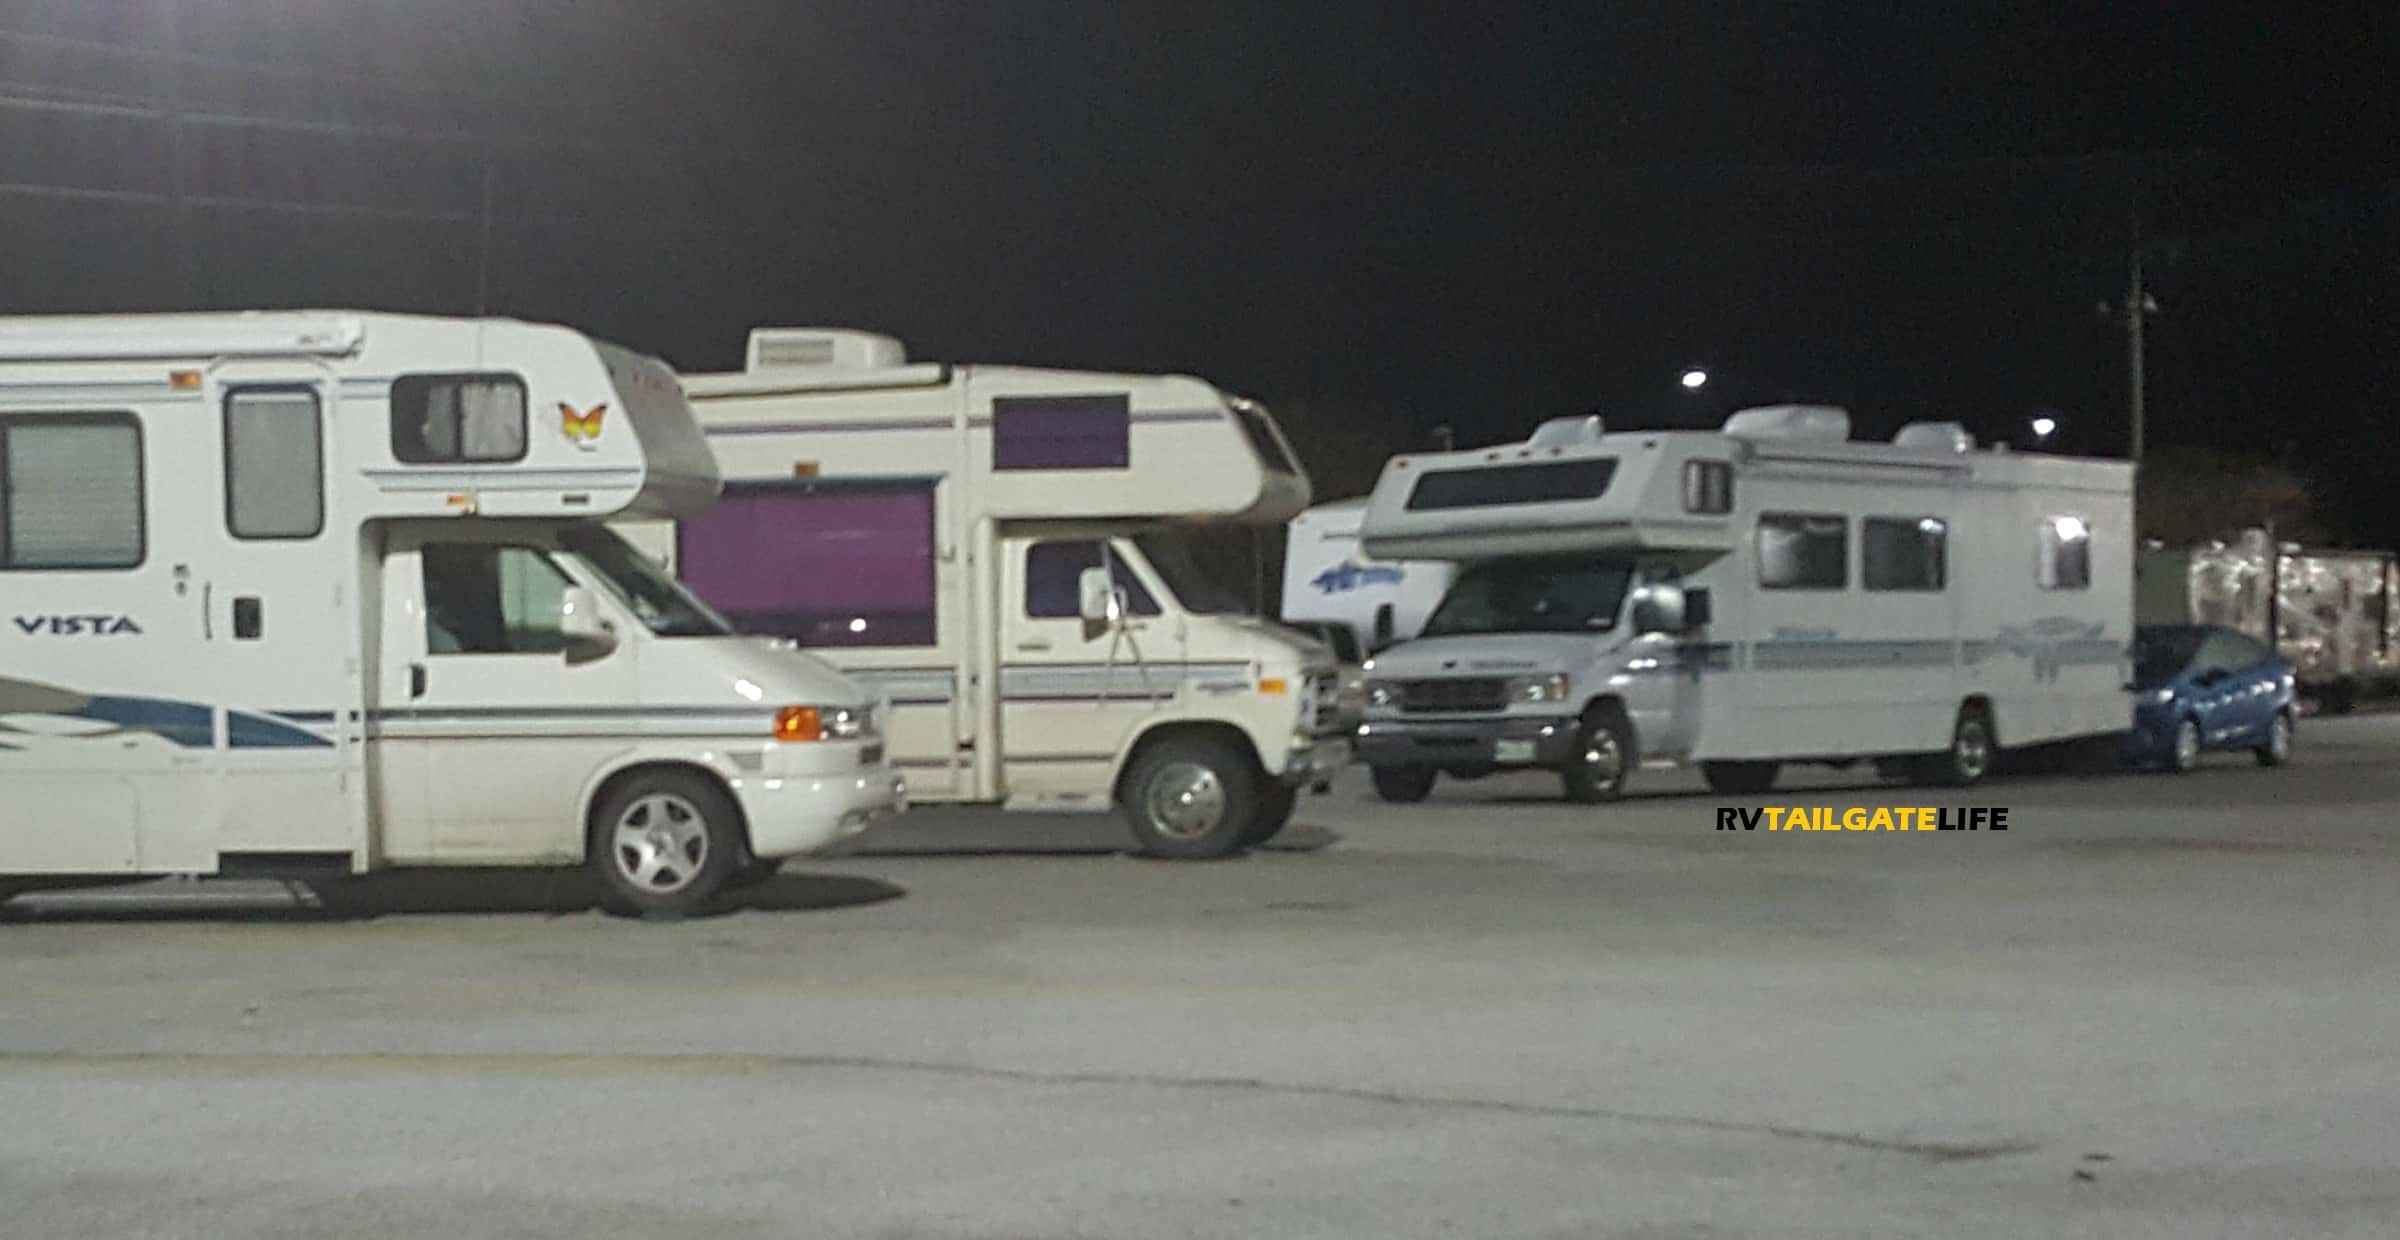 tips for overnight rv parking on a roadtrip rv tailgate life